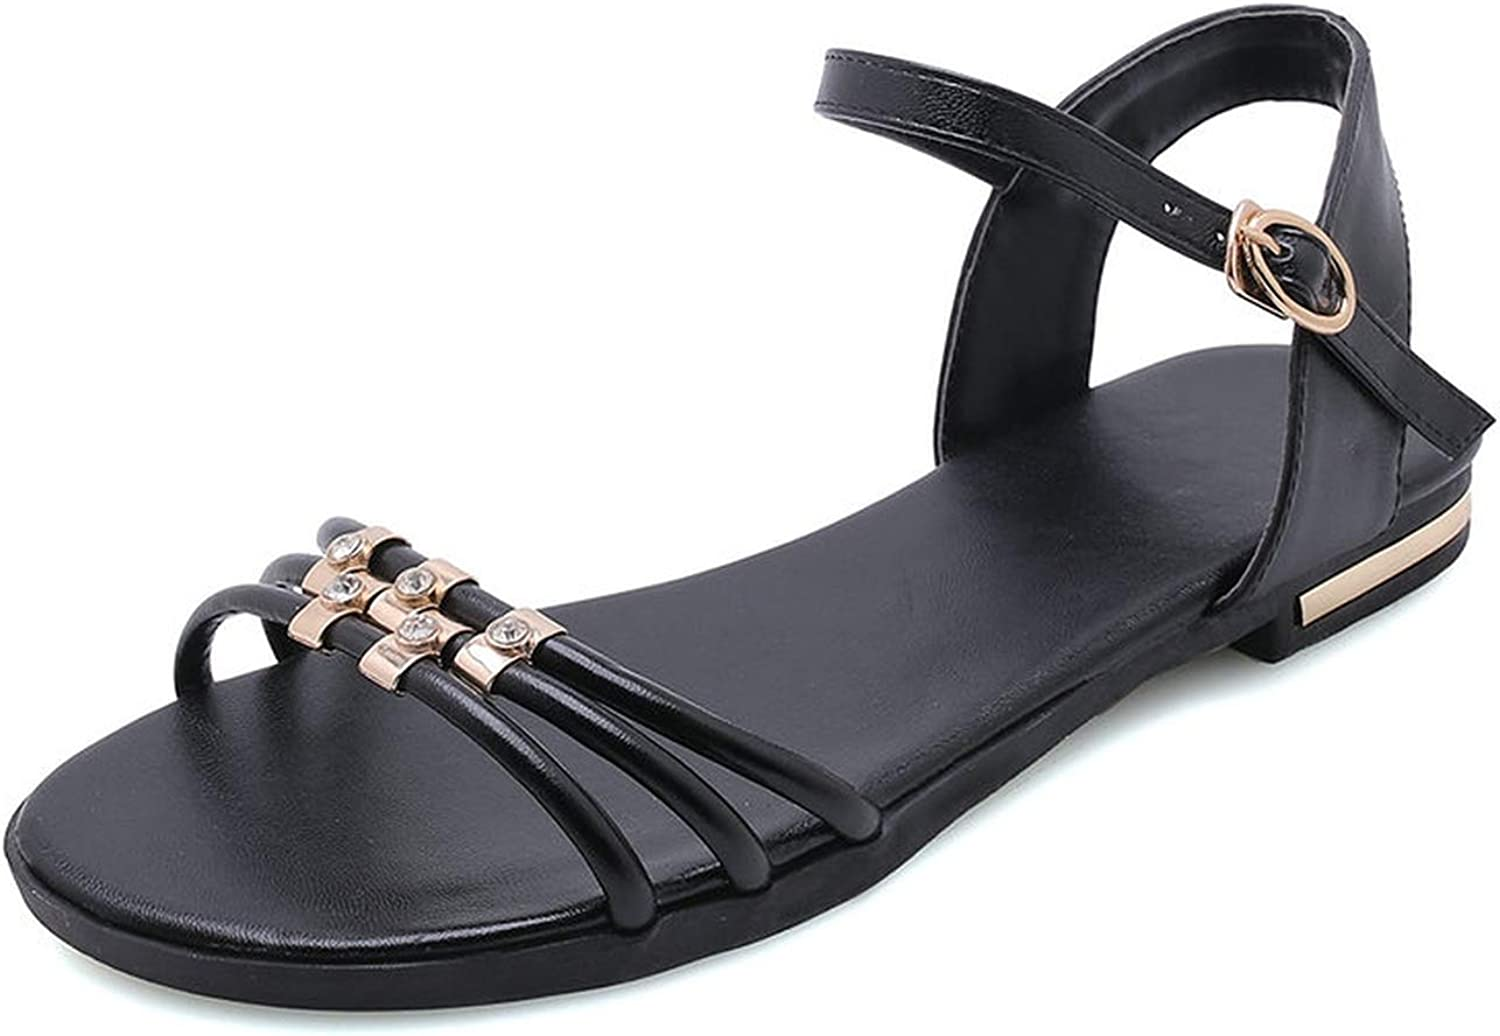 Women Sandals Flat Heel Cow Leather+Pu Round Open-Toed Metal Decoration Buckle shoes 34-43